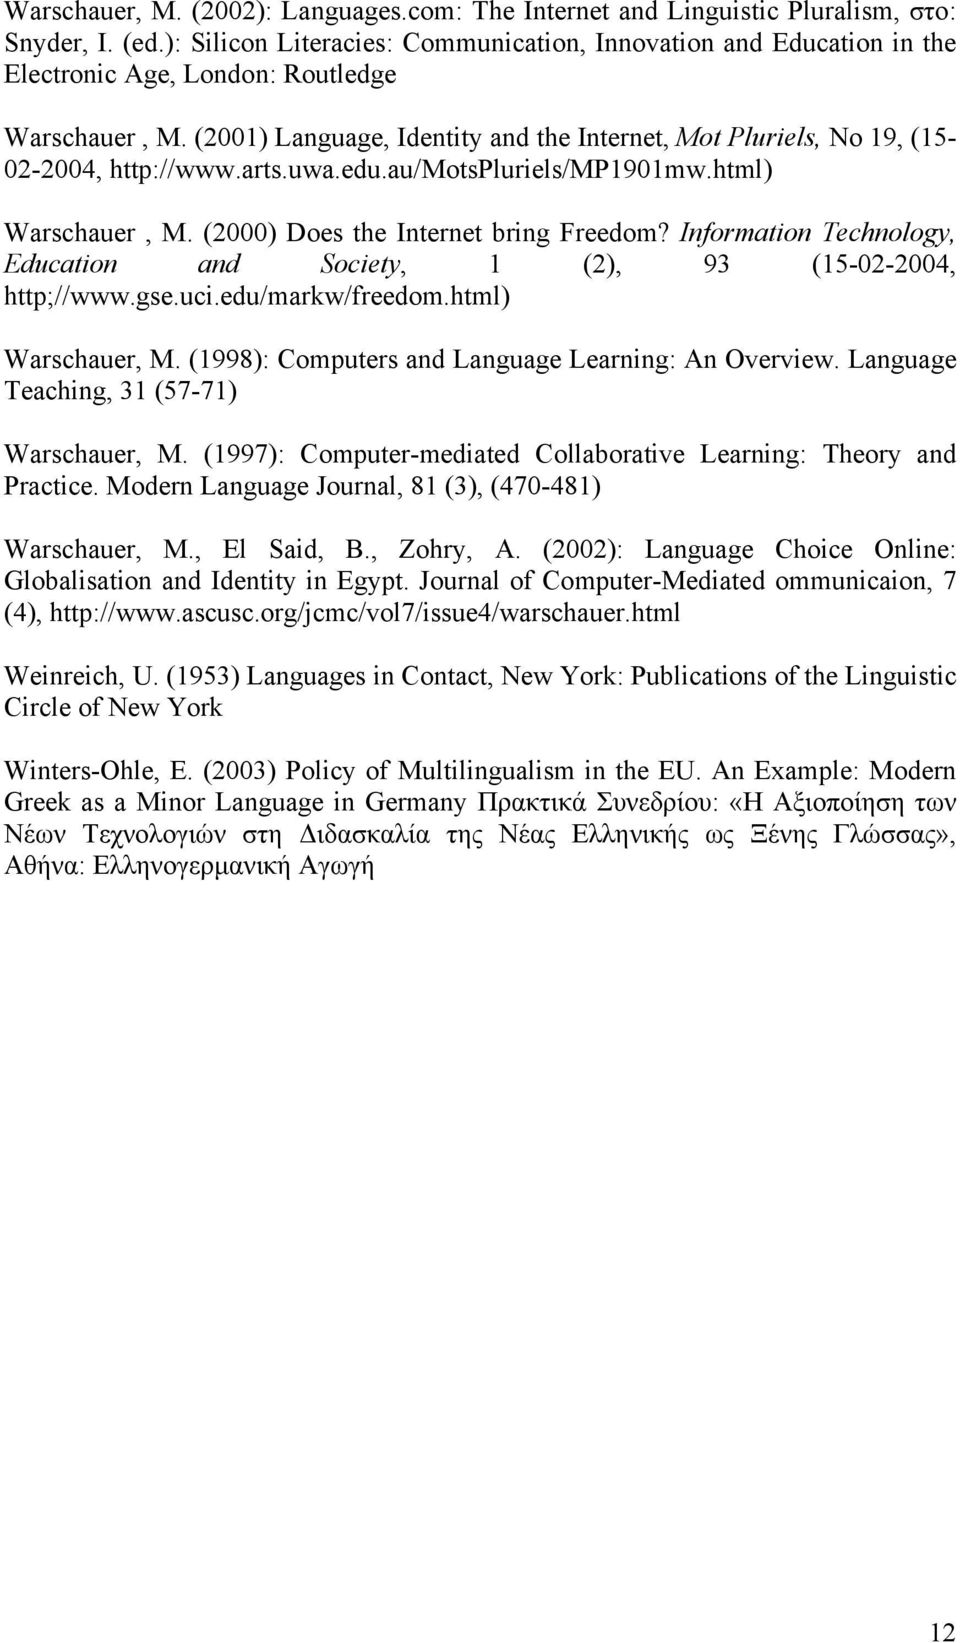 (2001) Language, Identity and the Internet, Mot Pluriels, No 19, (15-02-2004, http://www.arts.uwa.edu.au/motspluriels/mp1901mw.html) Warschauer, M. (2000) Does the Internet bring Freedom?